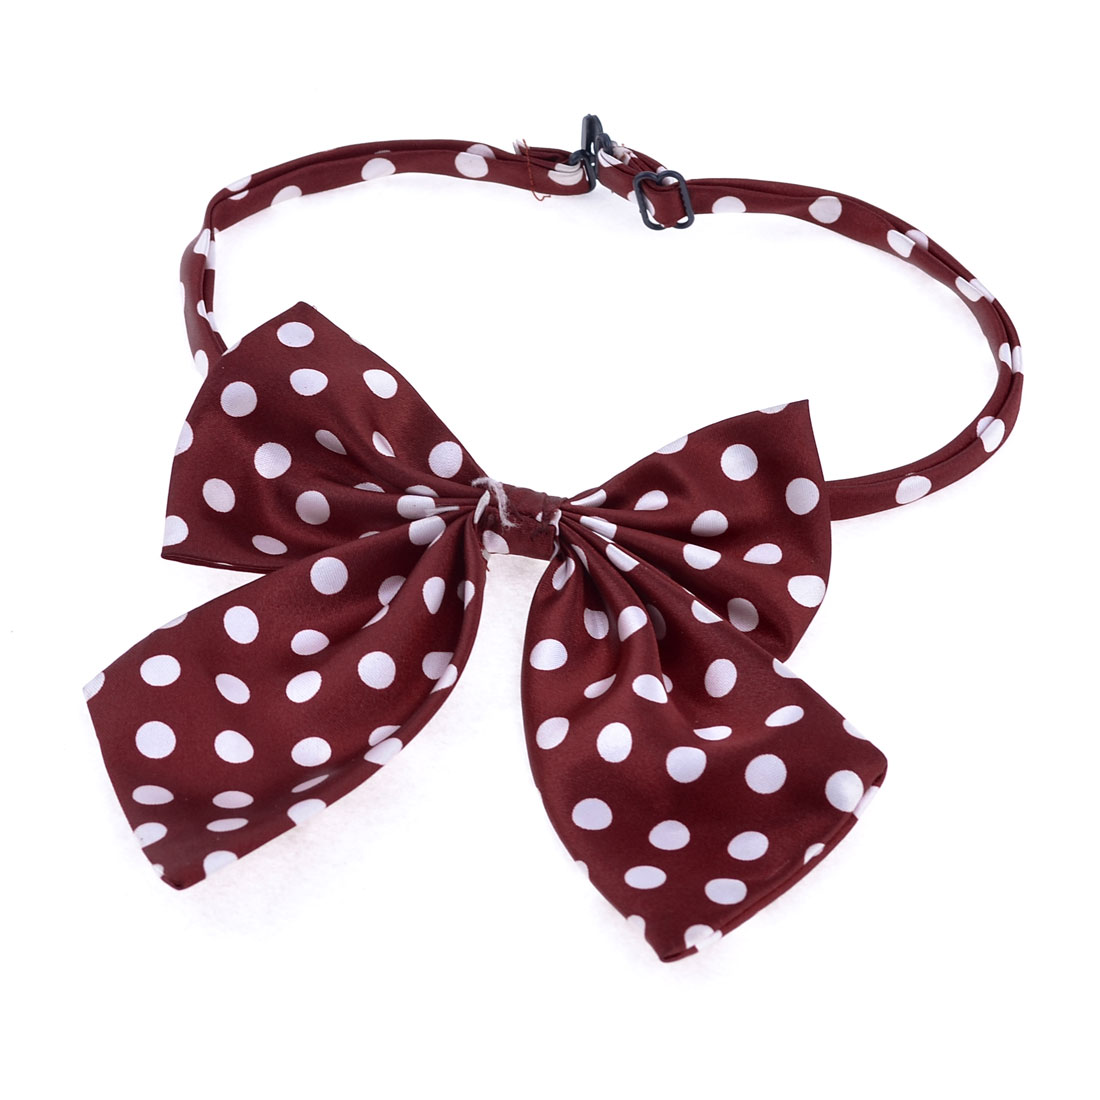 Lady Dots Print Dress Pre-tie Regulable Neckwear Bow Tie Necktie Burgundy